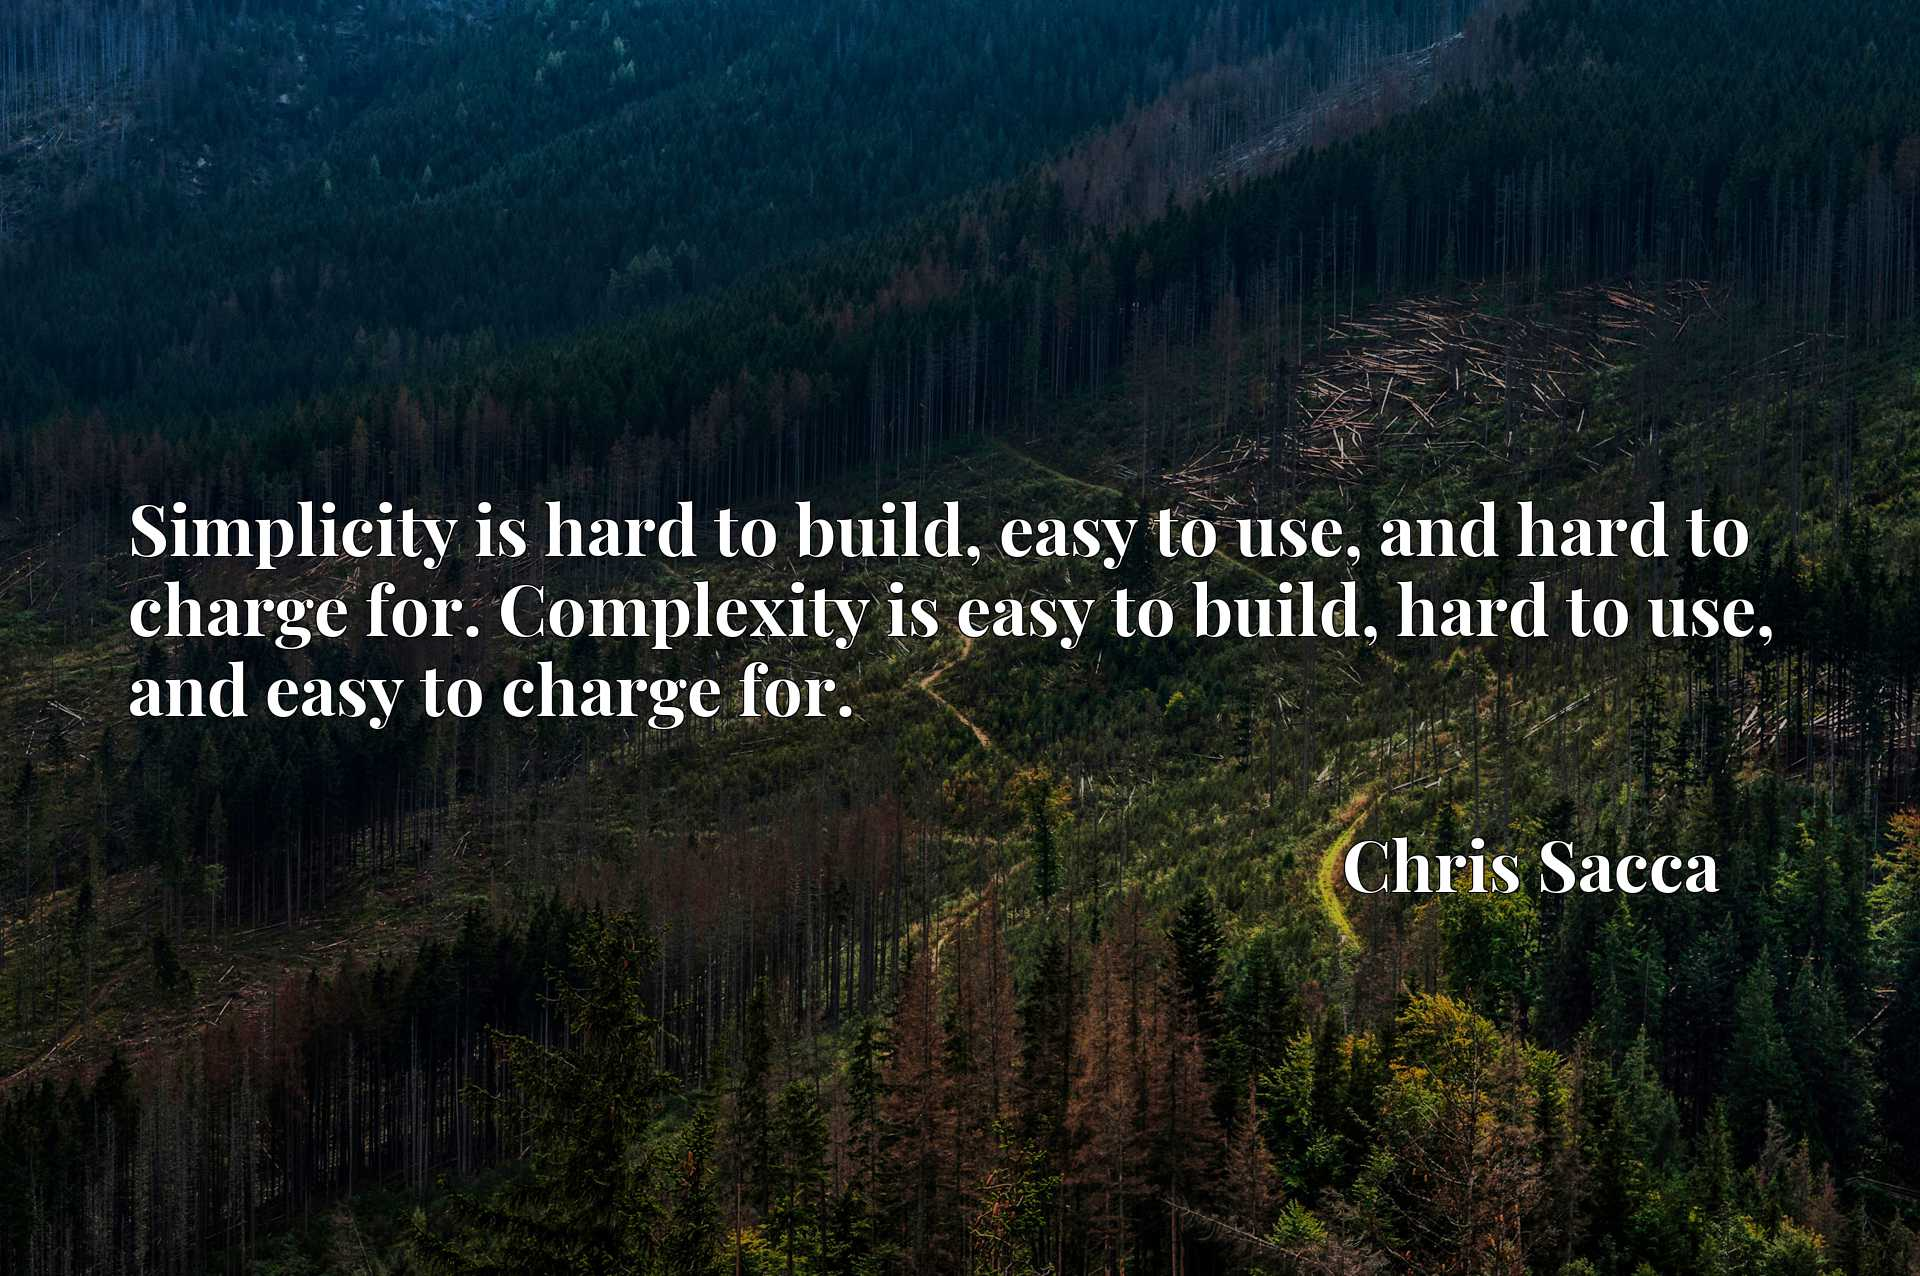 Simplicity is hard to build, easy to use, and hard to charge for. Complexity is easy to build, hard to use, and easy to charge for.